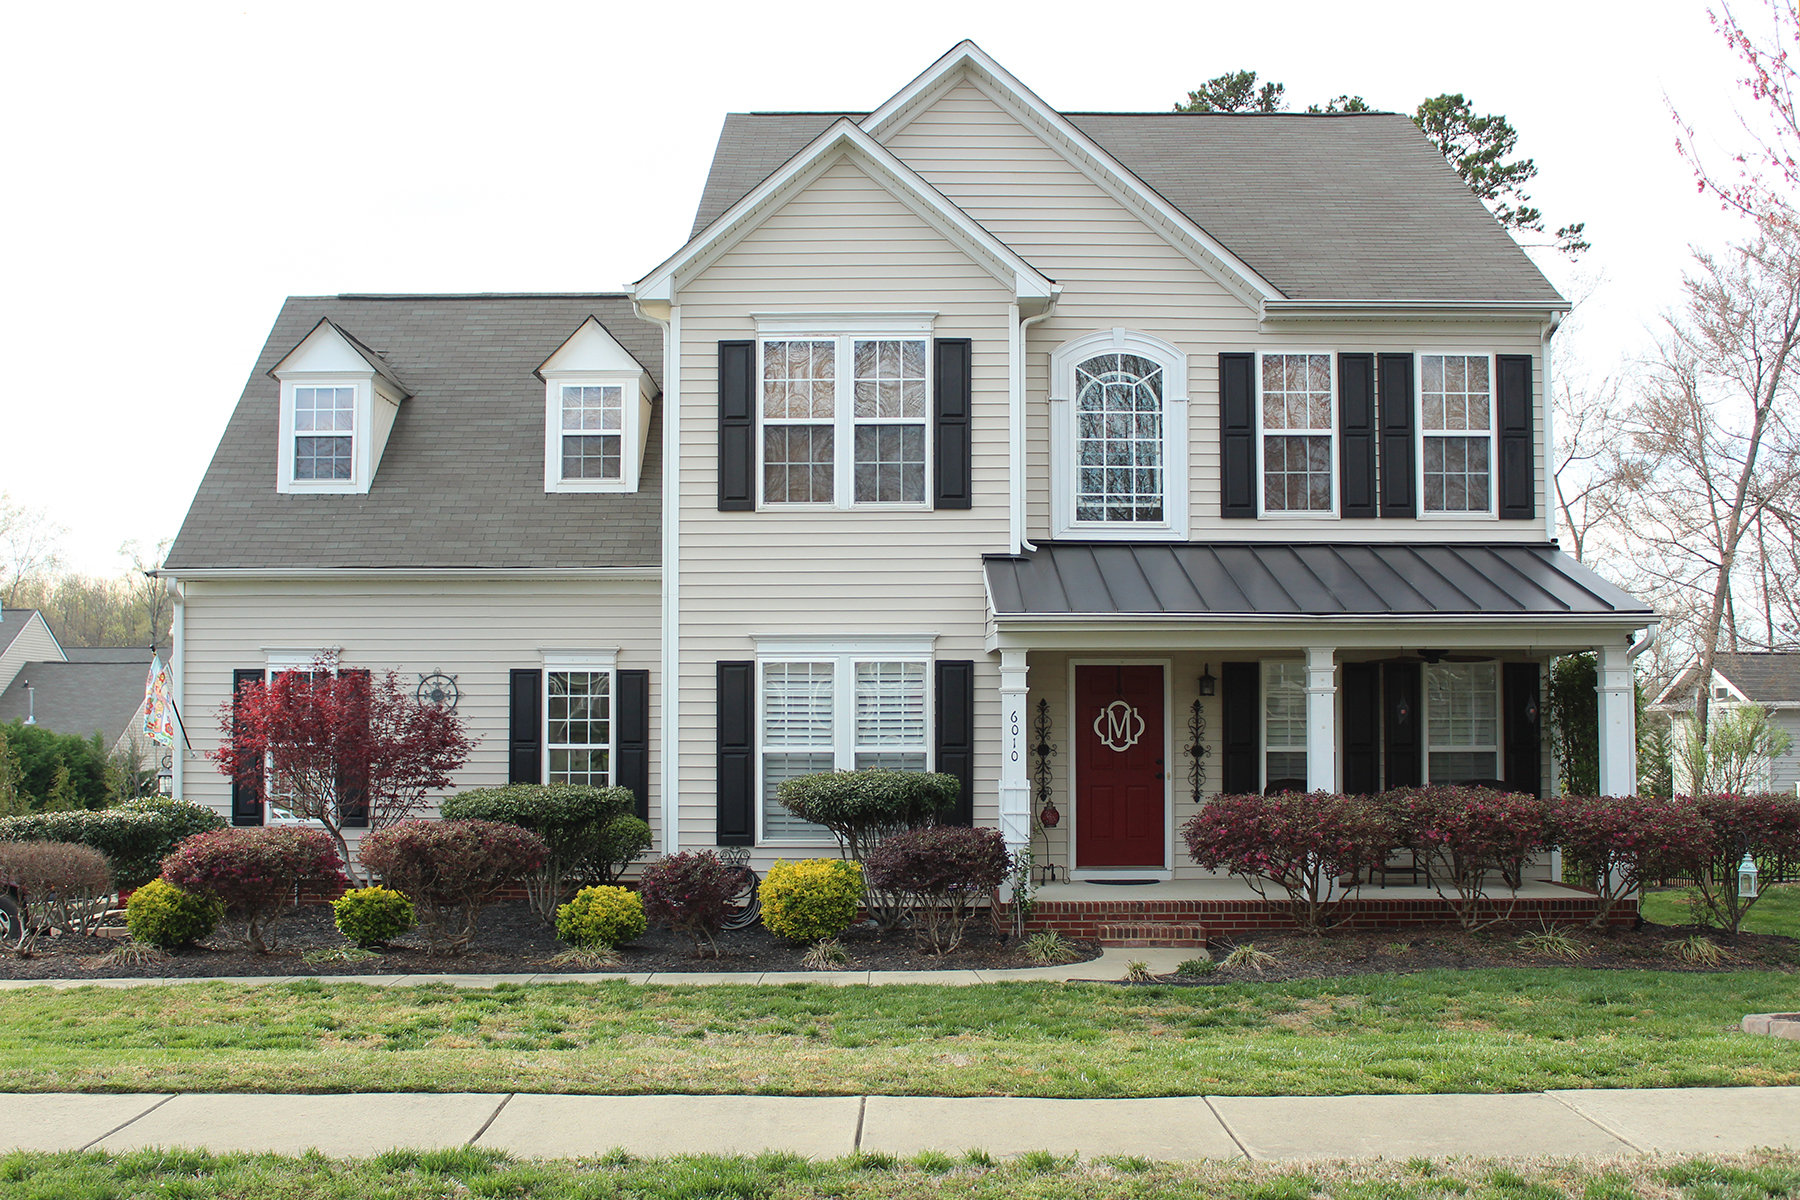 Single Family Homes for Active at BRANDON OAKS 6010 Fountainbrook Dr Indian Trail, North Carolina 28079 United States